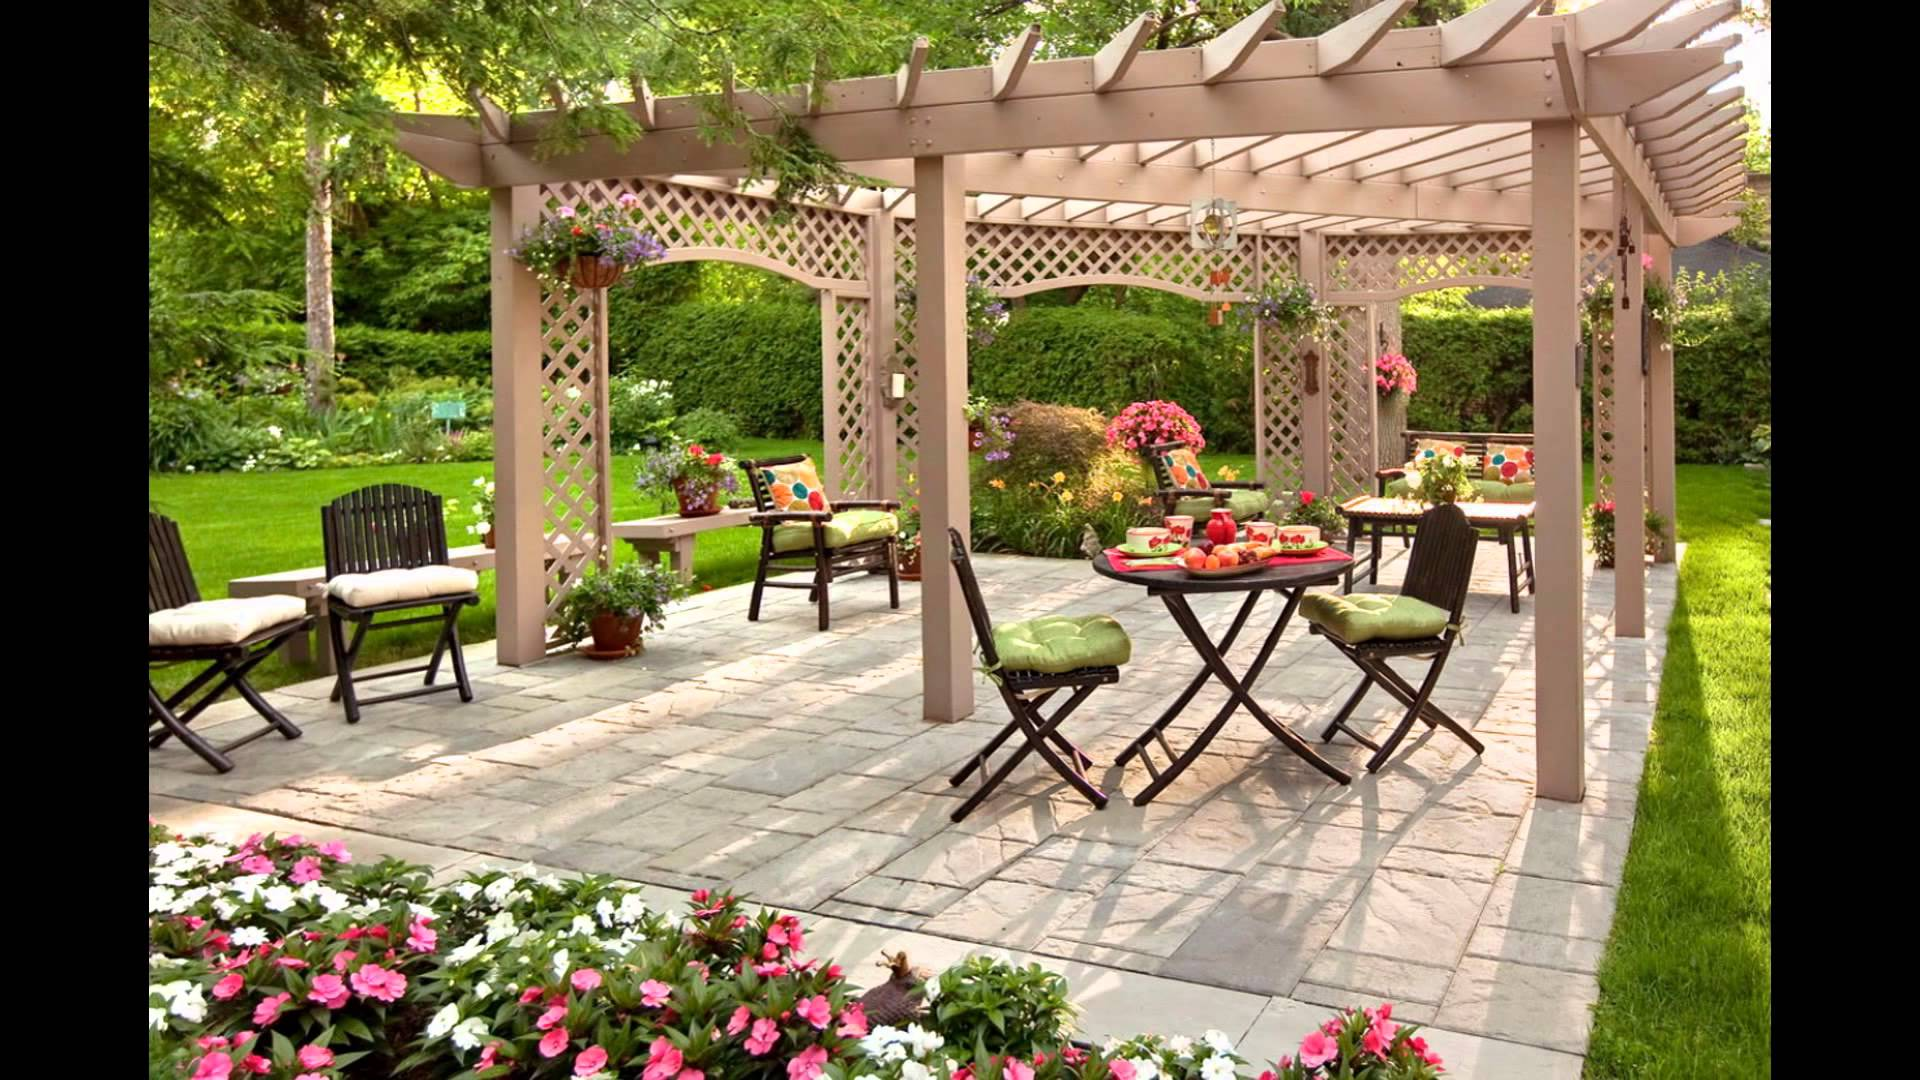 Easy and Beautiful Outdoor Decor Ideas for Your Yard on Garden Decor Ideas  id=84448